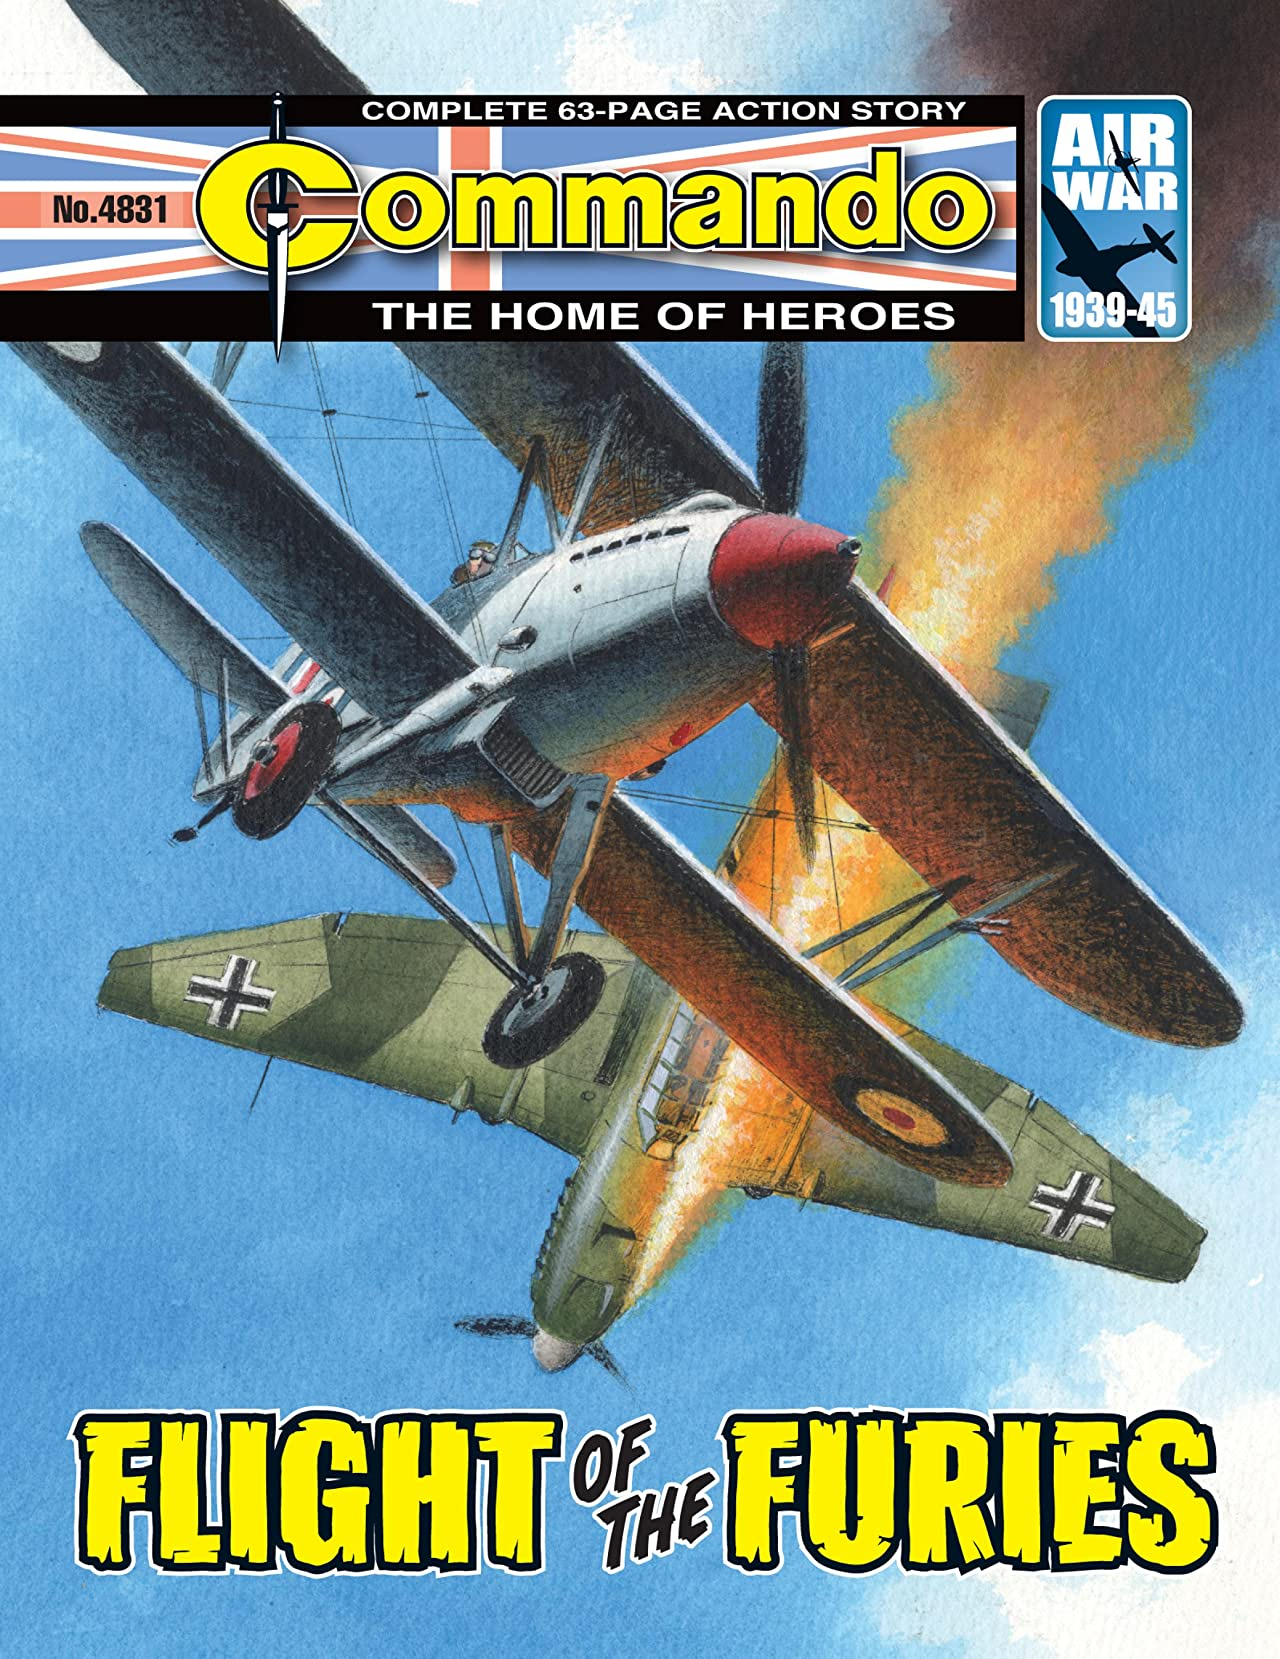 Commando #4831: Flight Of The Furies